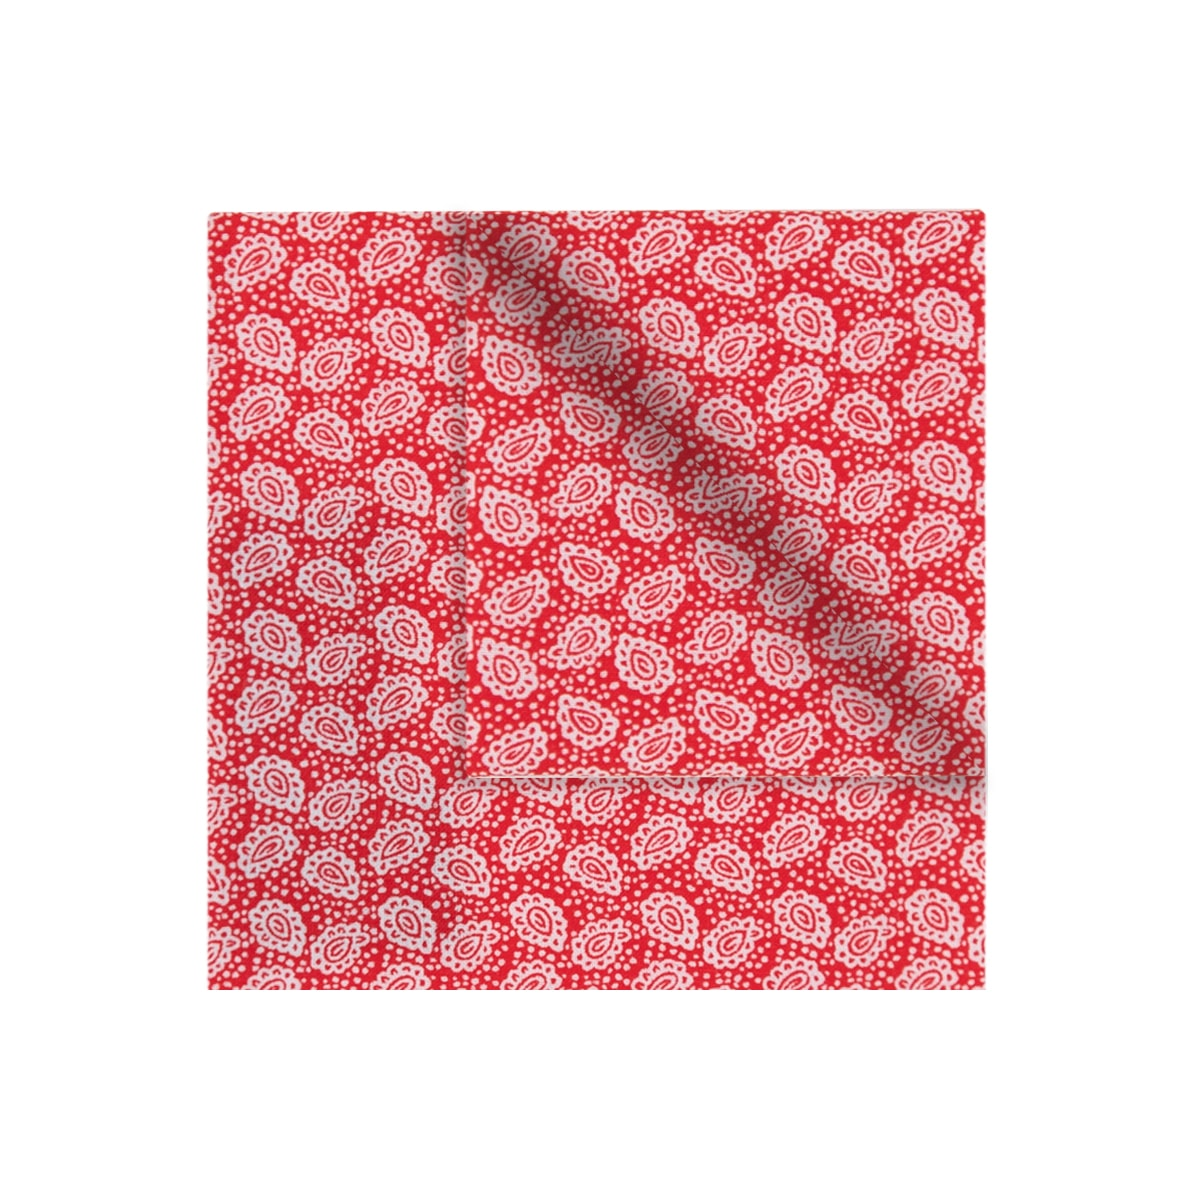 InStitchu Accessories pocket-squareThe Harwood